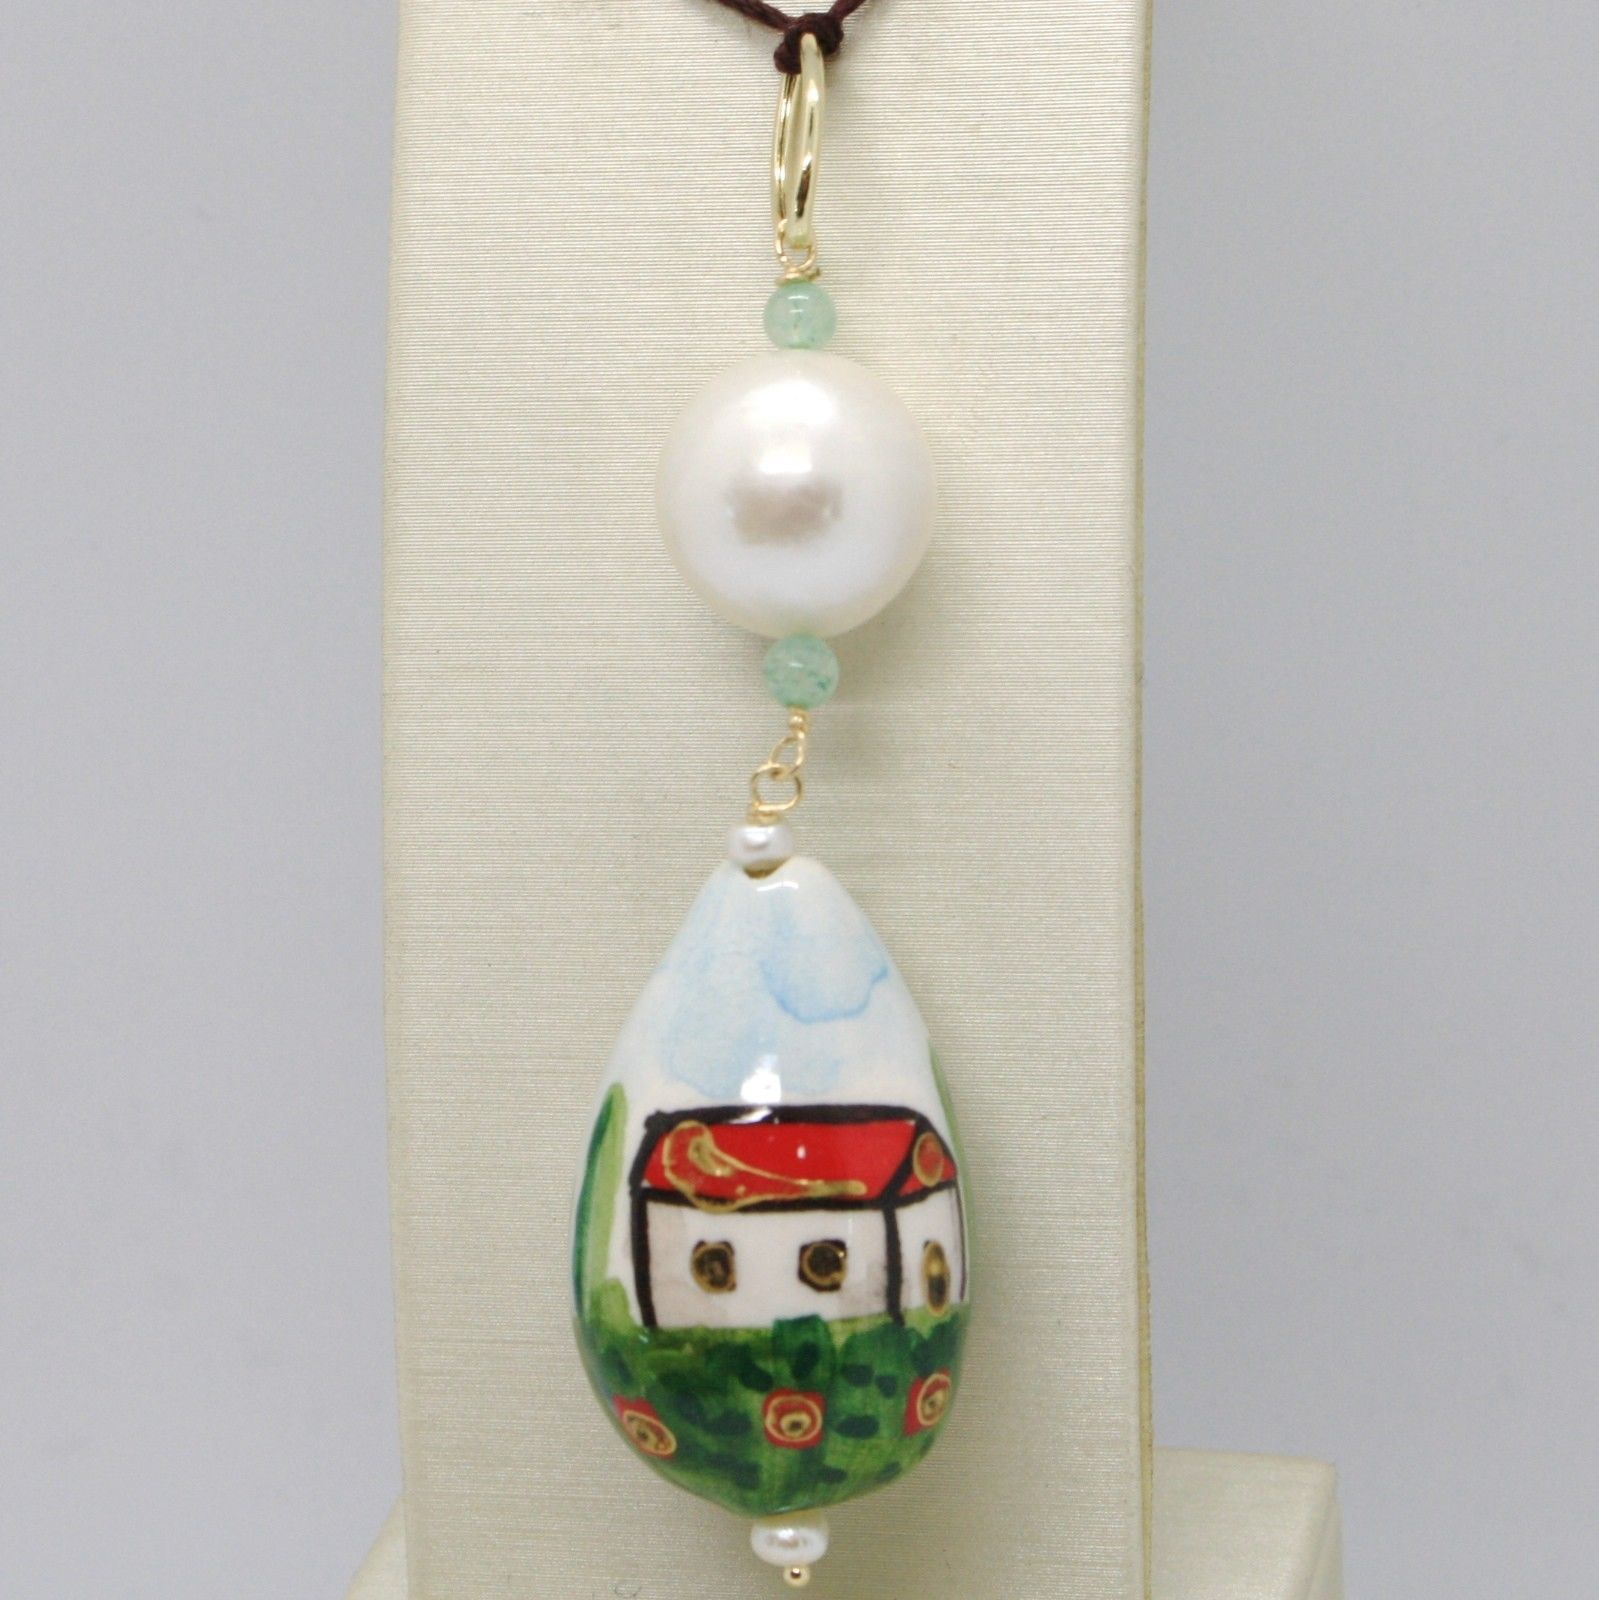 18K YELLOW GOLD PENDANT AVENTURINE & CERAMIC HOME HOUSE HAND PAINTED IN ITALY